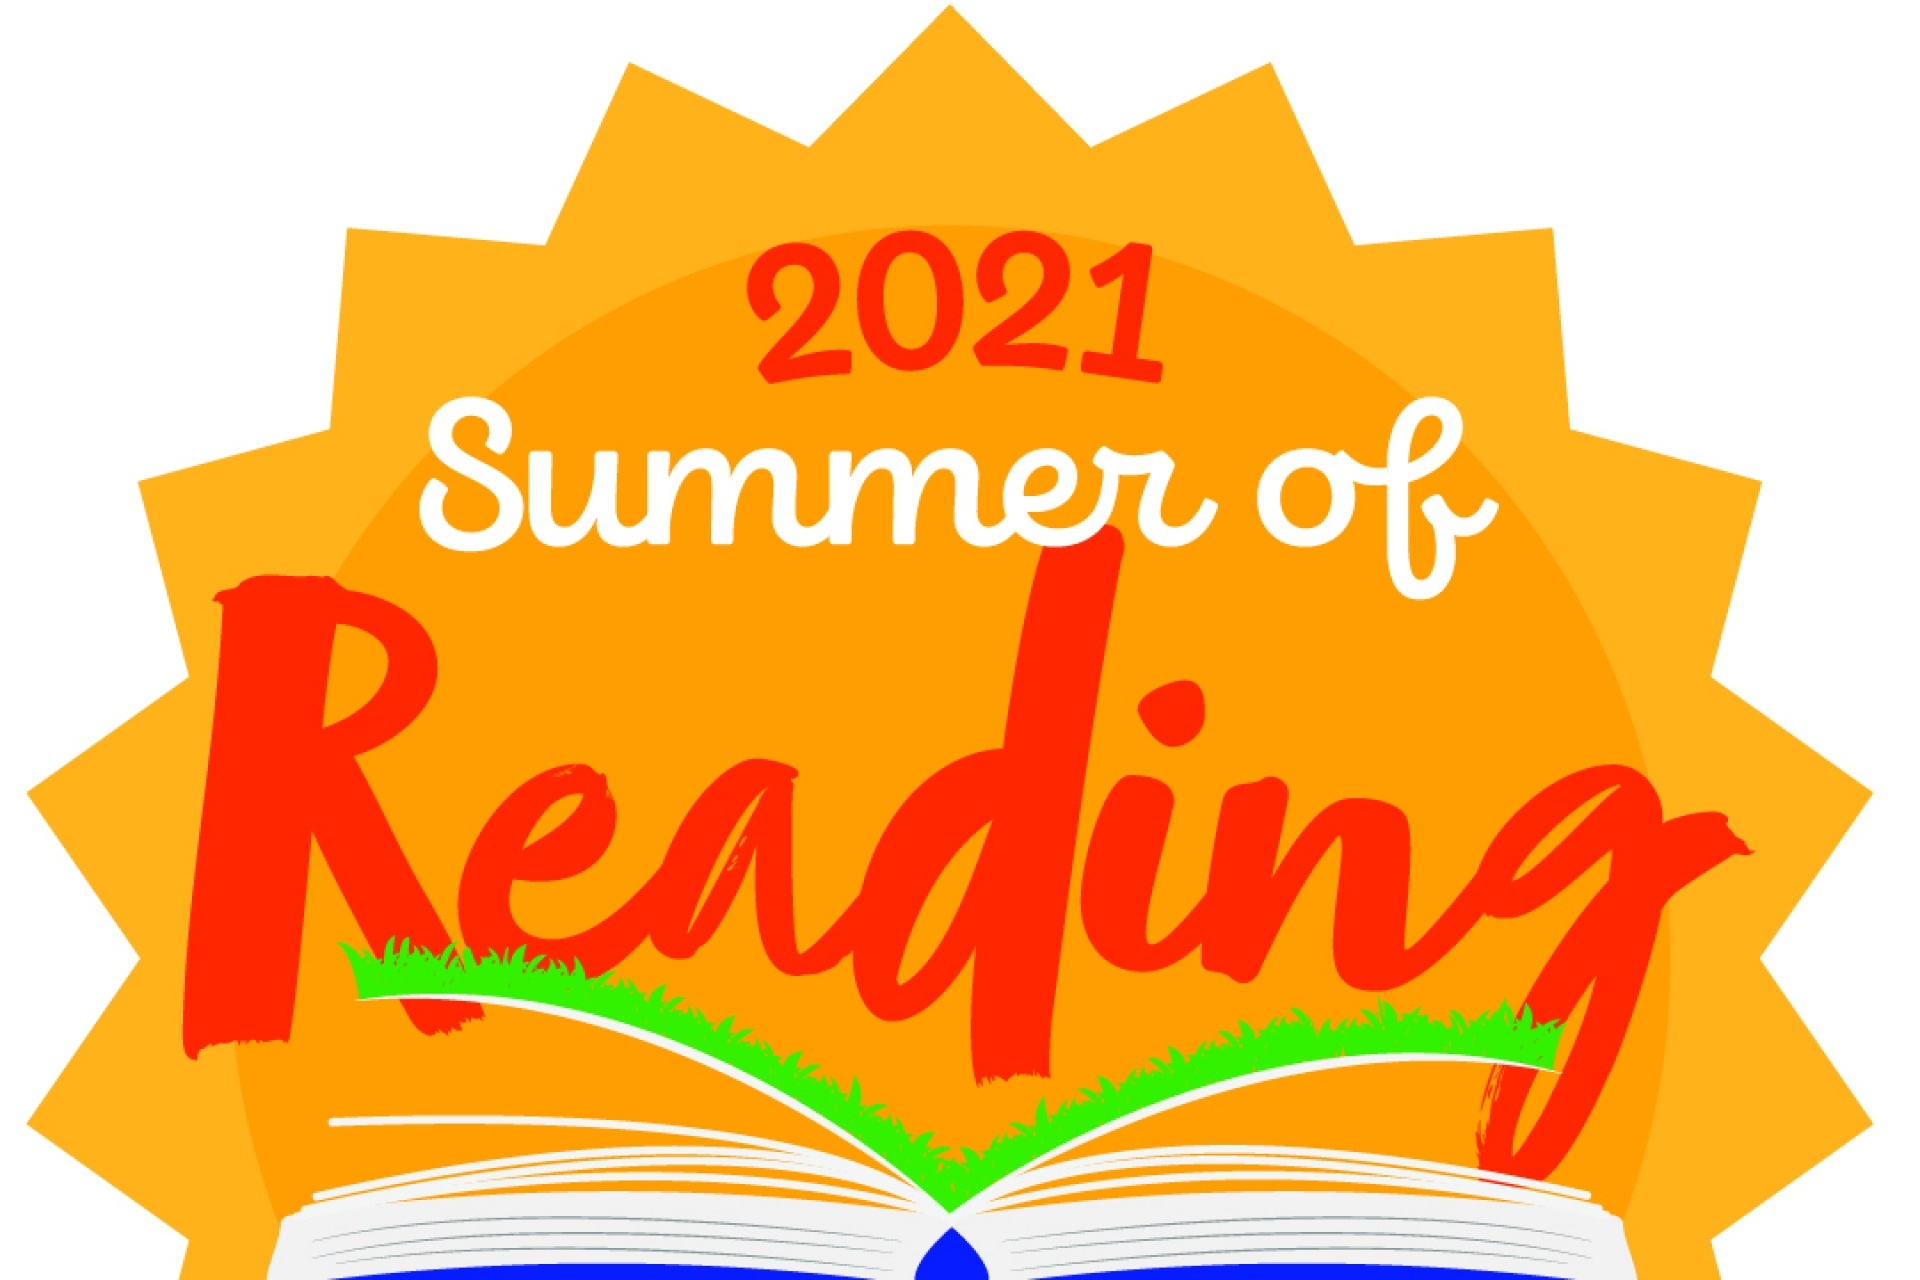 The Week Junior's Summer of Reading 2021